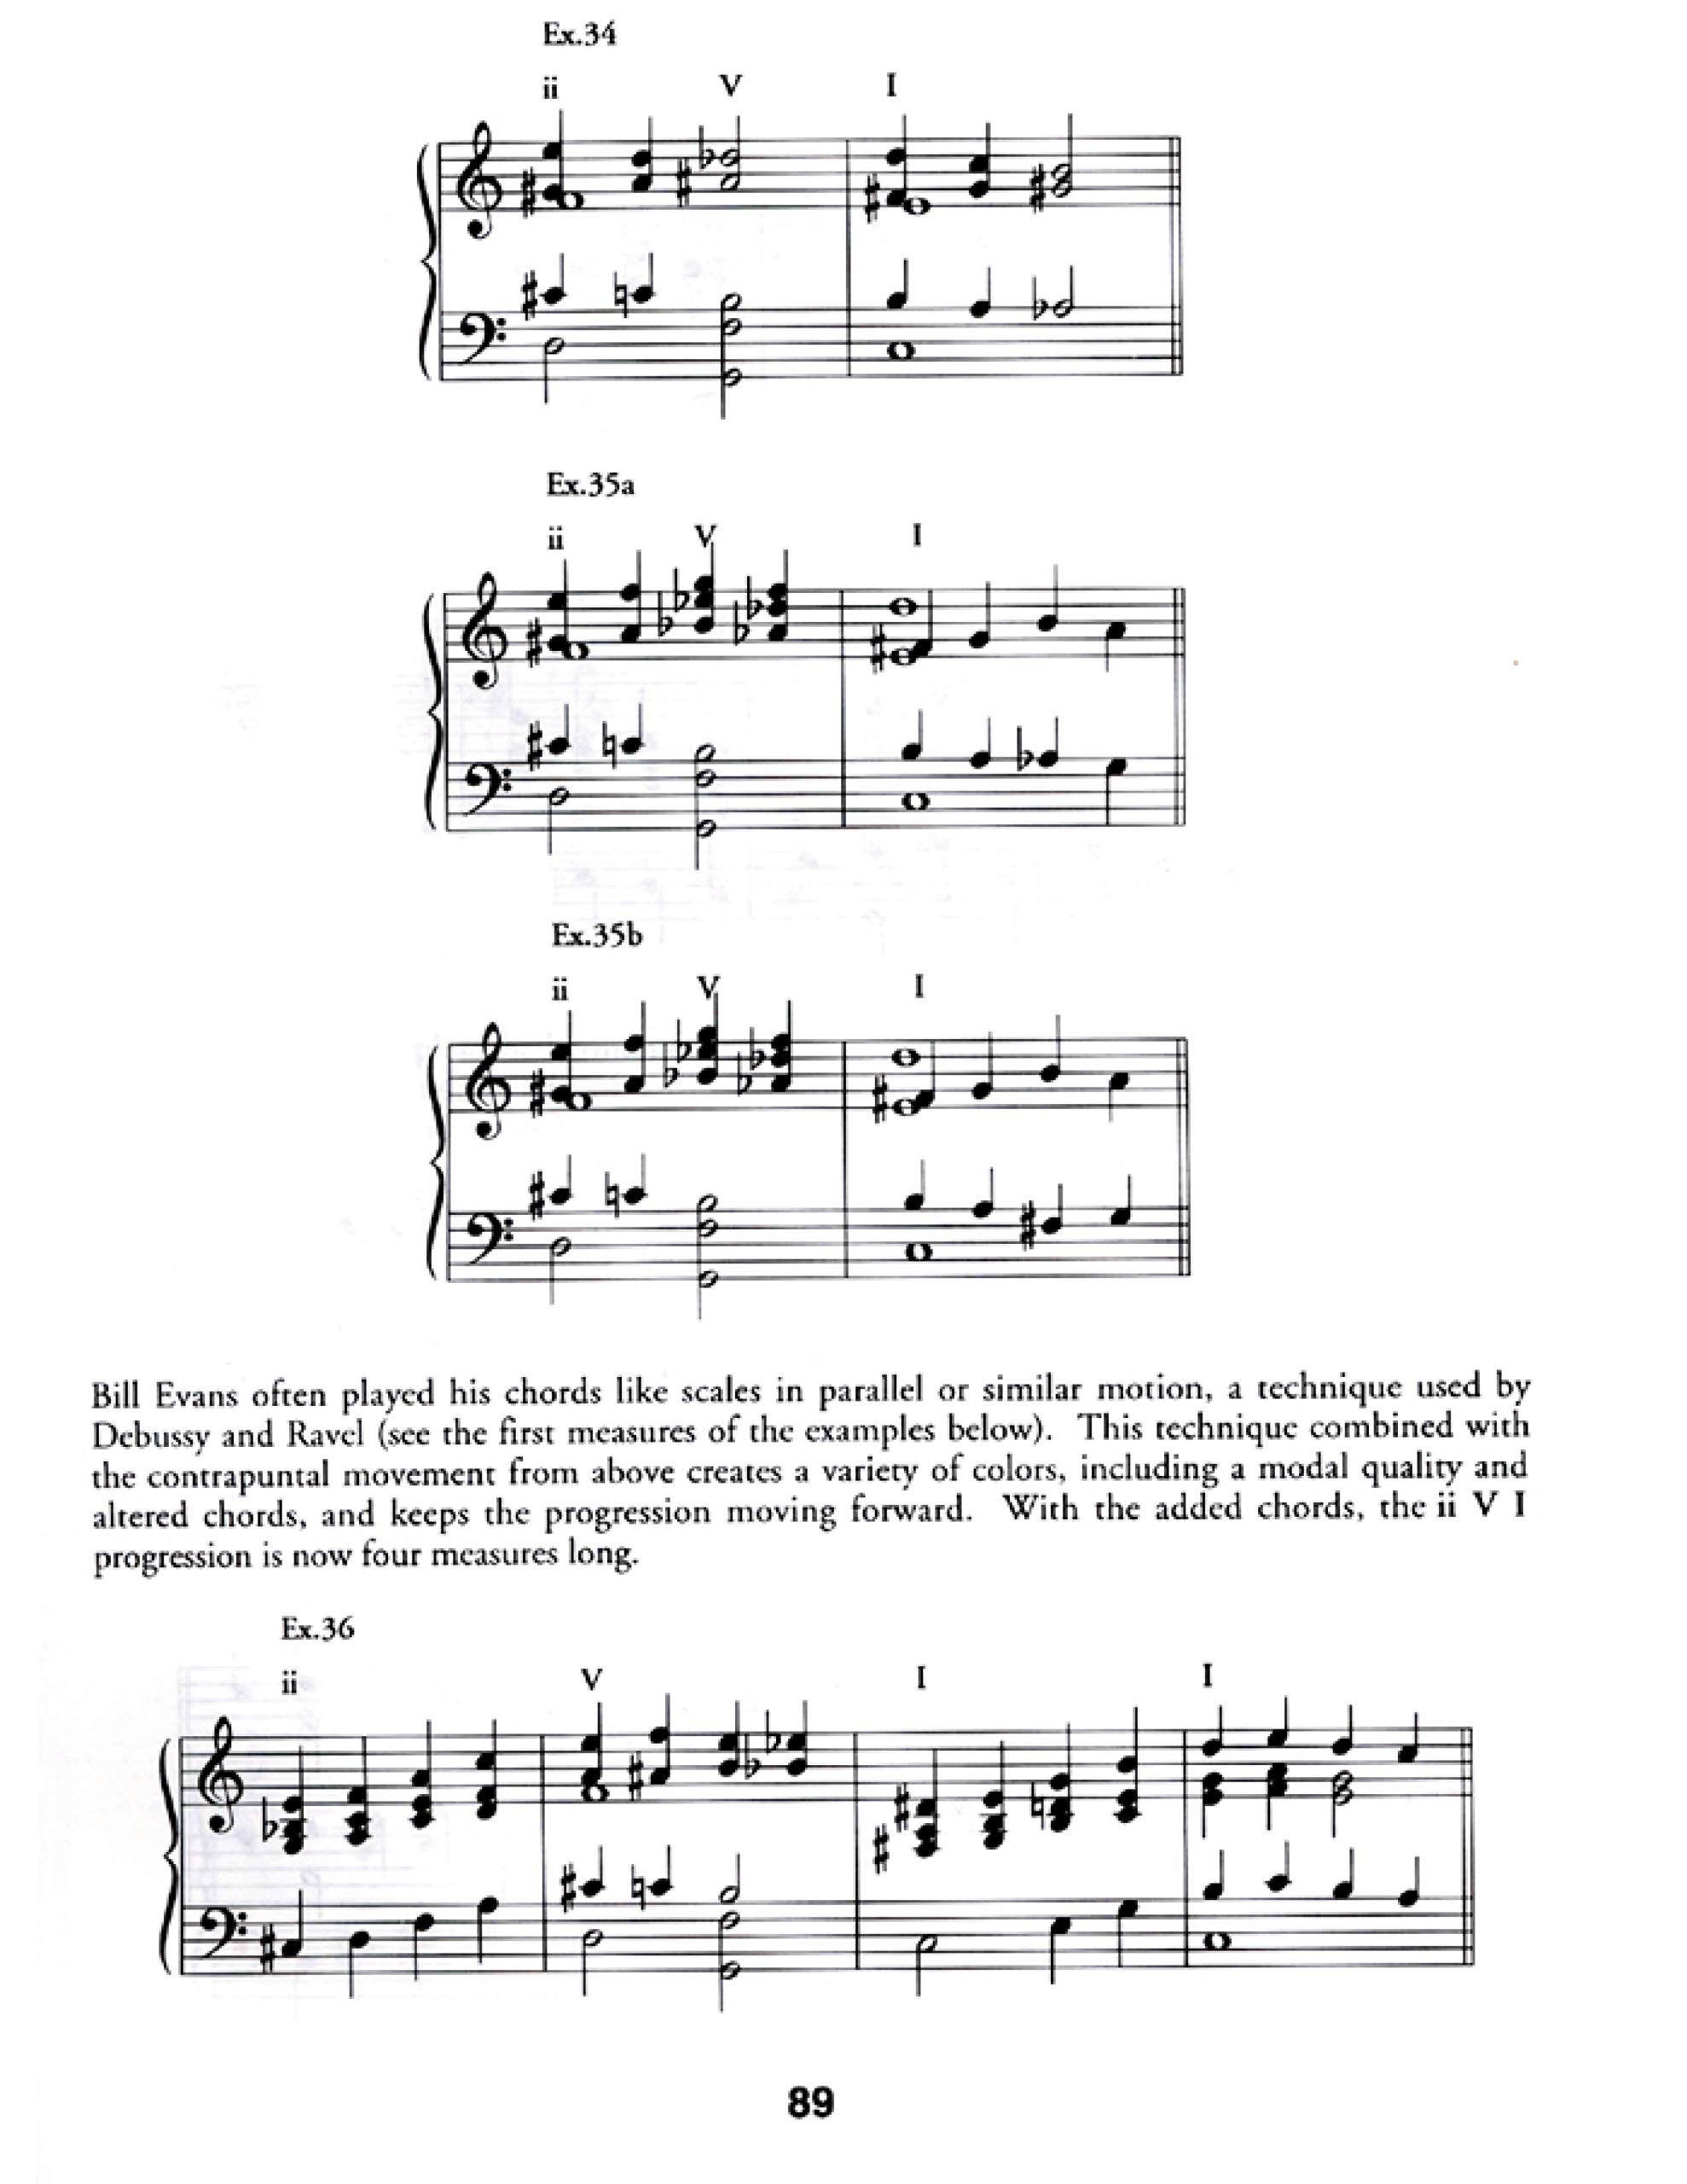 Luke Piano teaching material Stylistic II//V7//I Voicings for Keyboard Gillespie